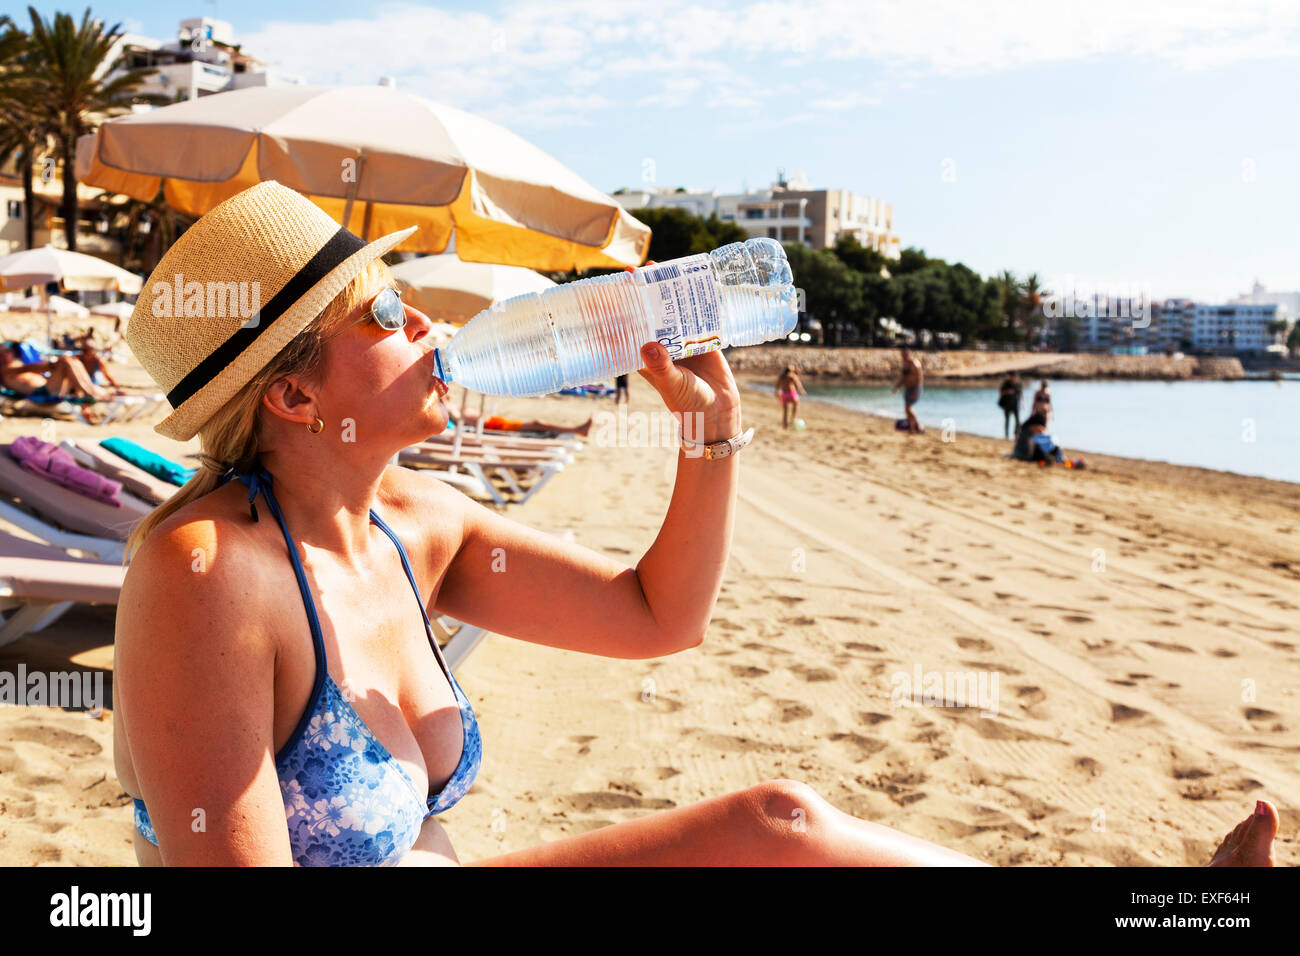 drinking drink water from bottle hydrating bottled rehydrate rehydrating sun sunny summer thirst thirsty Ibiza Spain - Stock Image